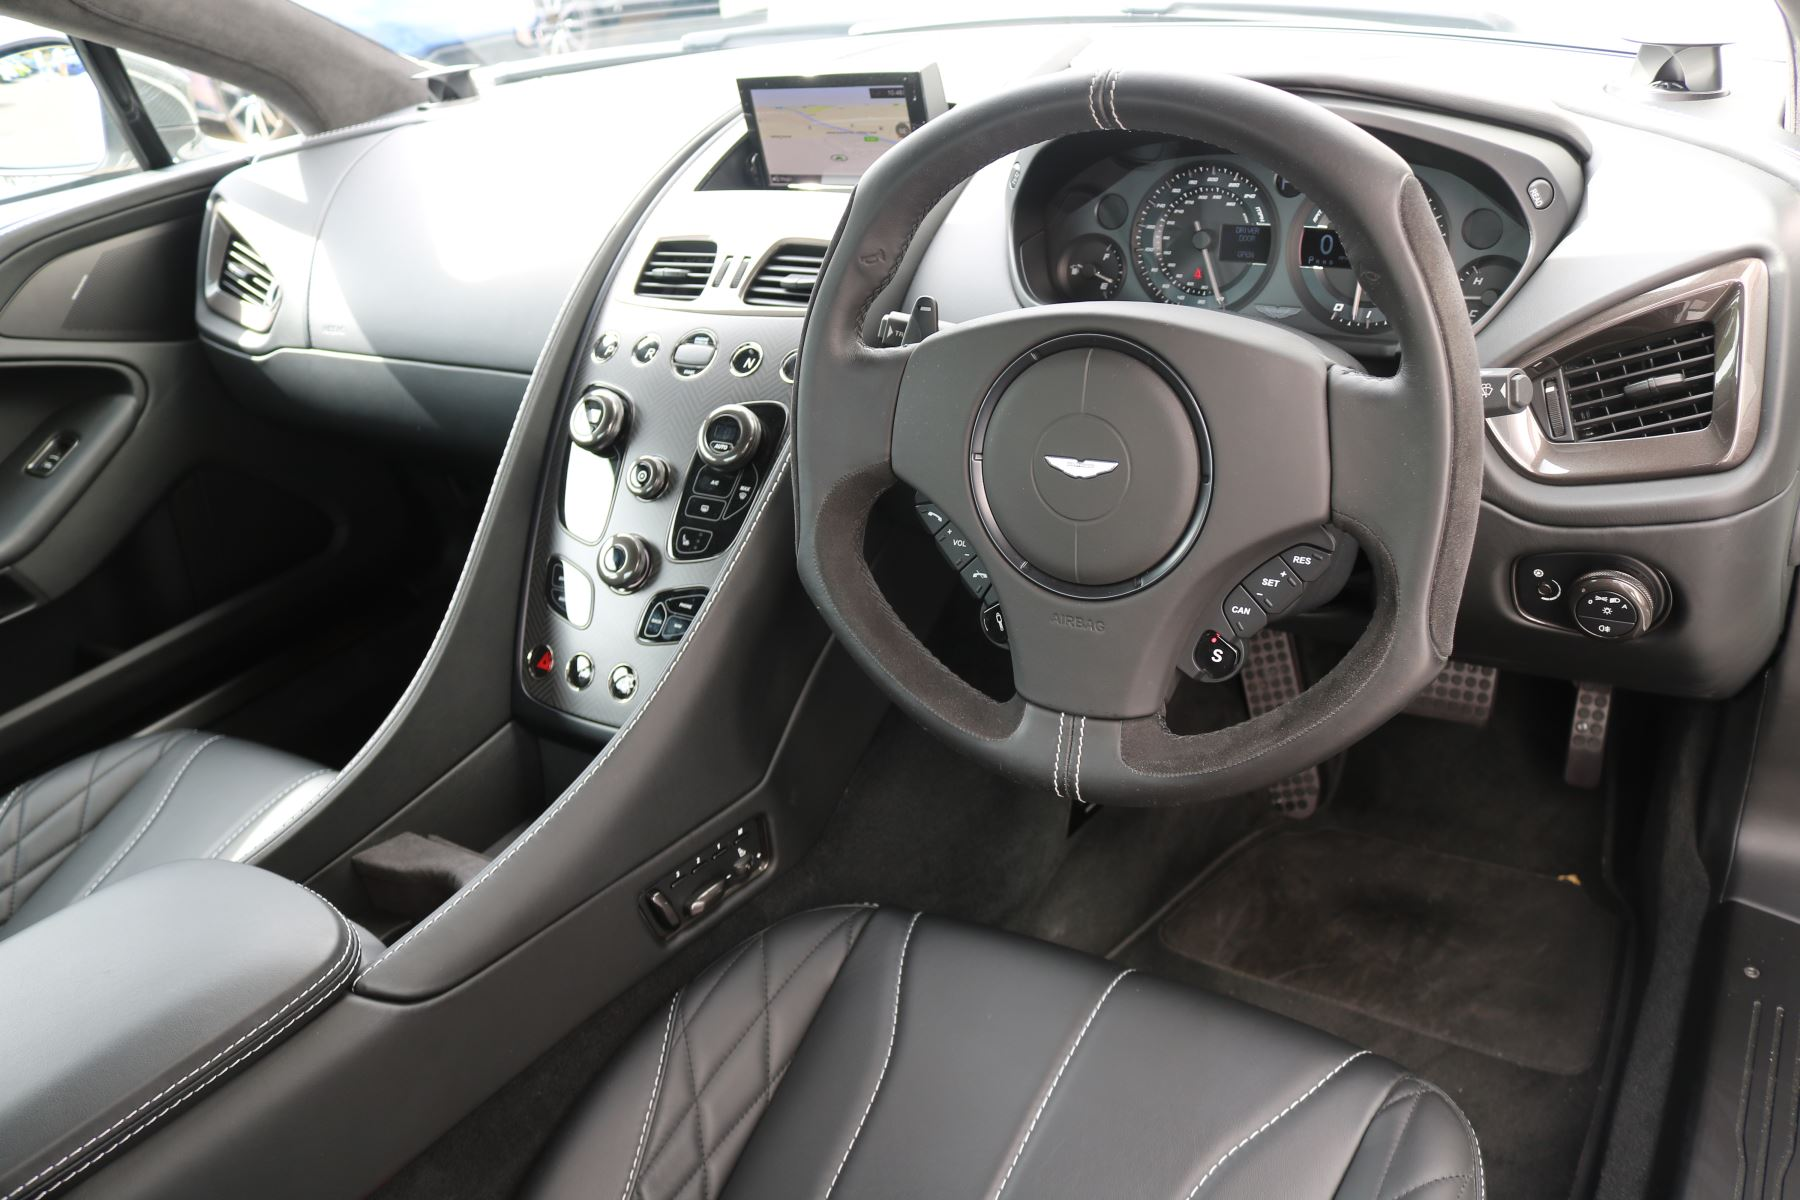 Aston Martin Vanquish V12 [595] S 2+2 2dr Touchtronic image 15